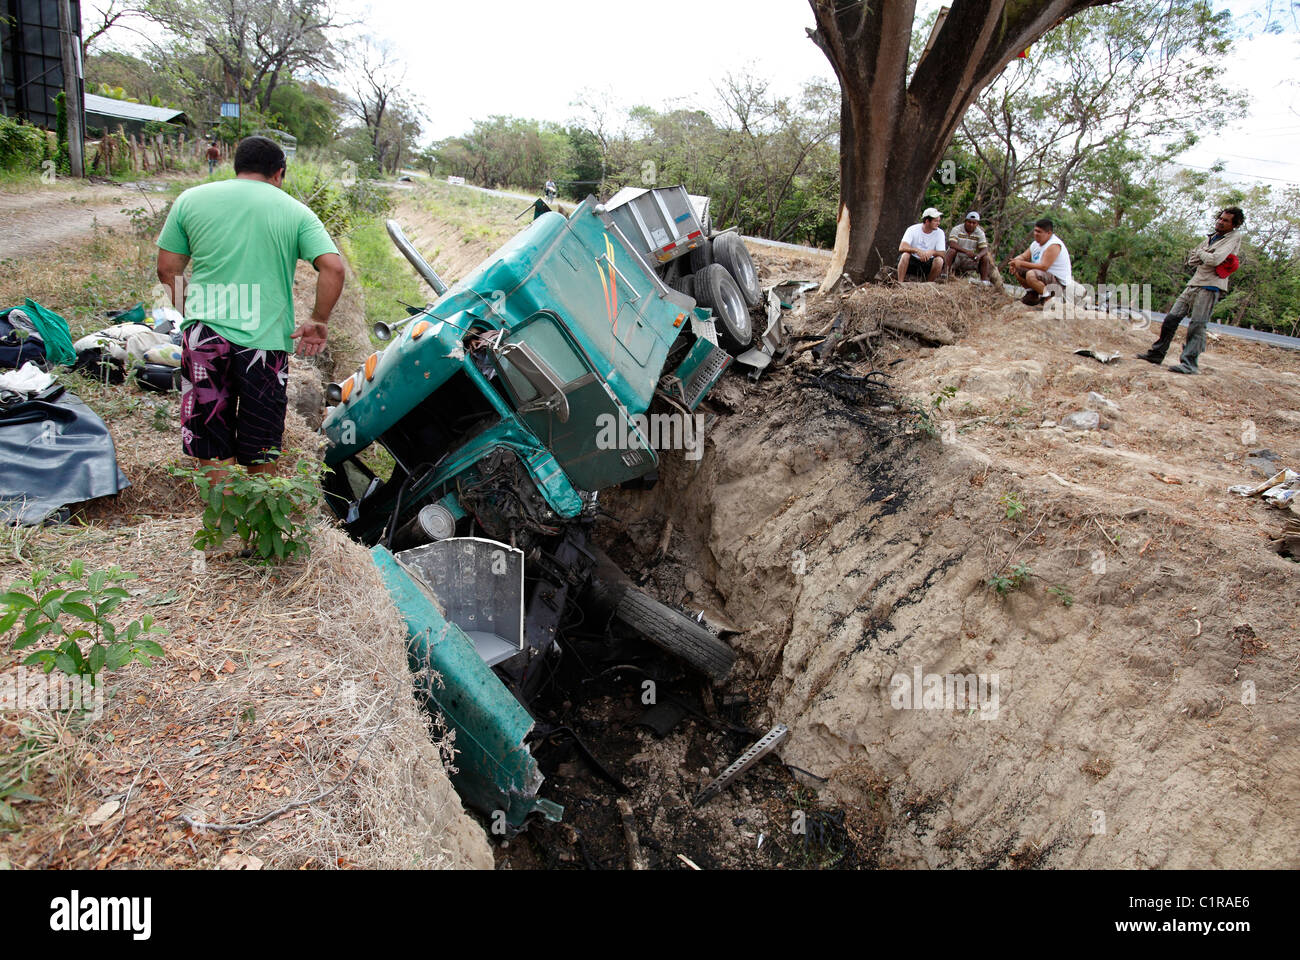 Truck crash on the Inter American Highway, Guanacaste, Costa Rica - Stock Image